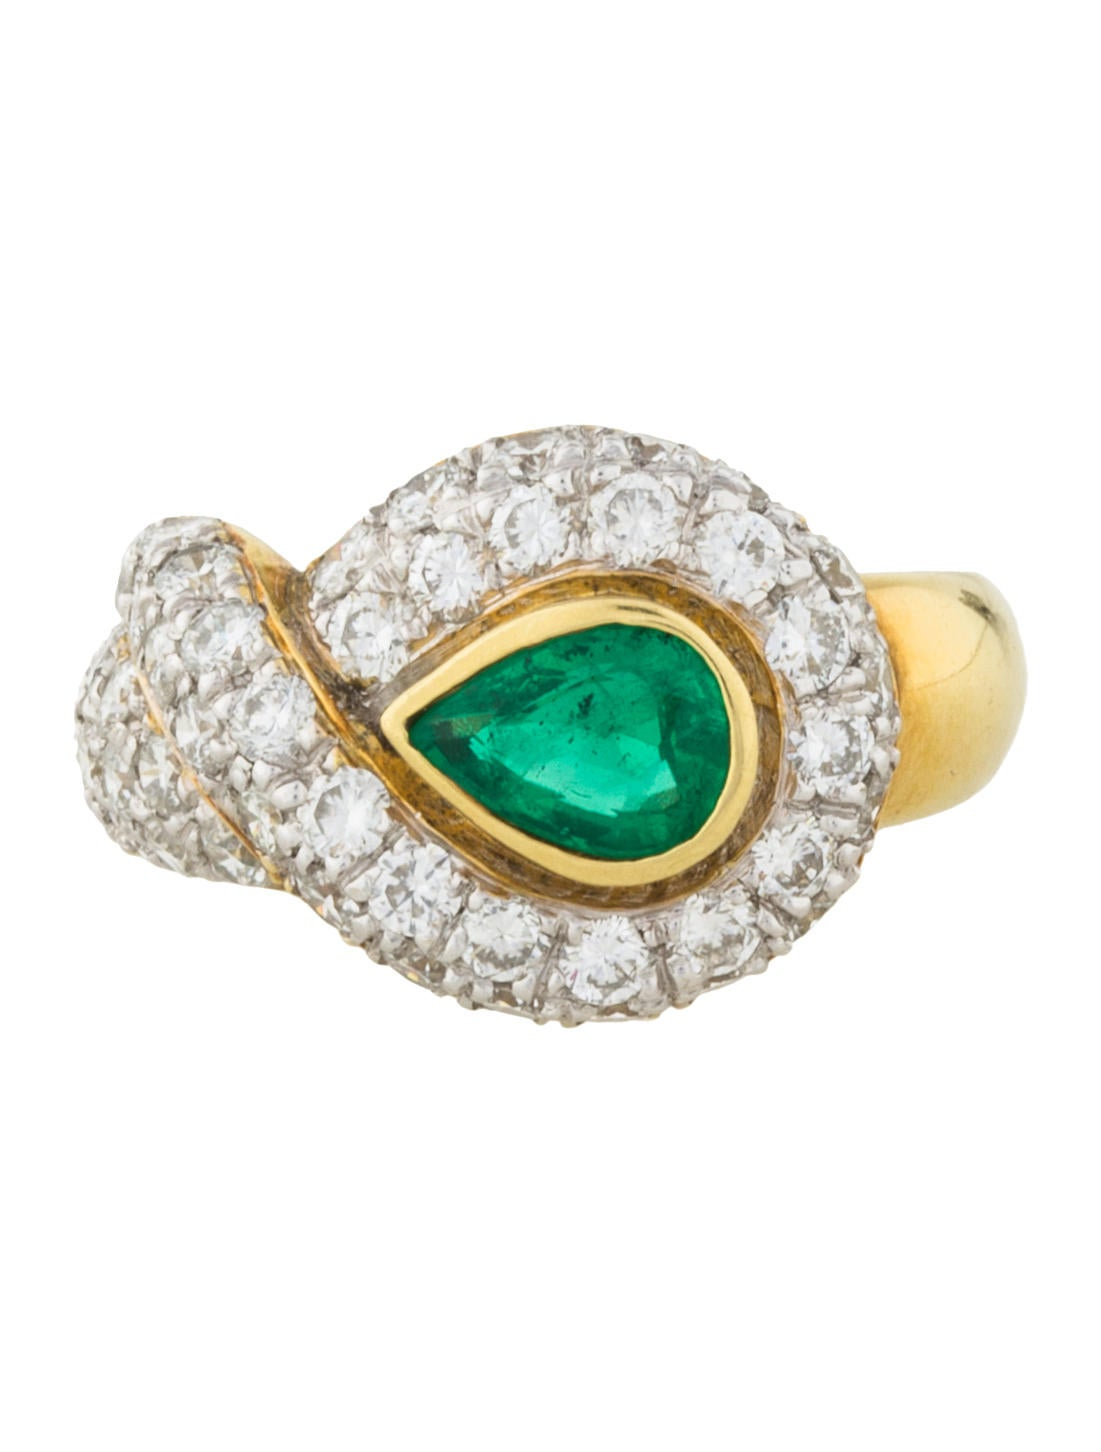 18k emerald cocktail ring rings rring38634